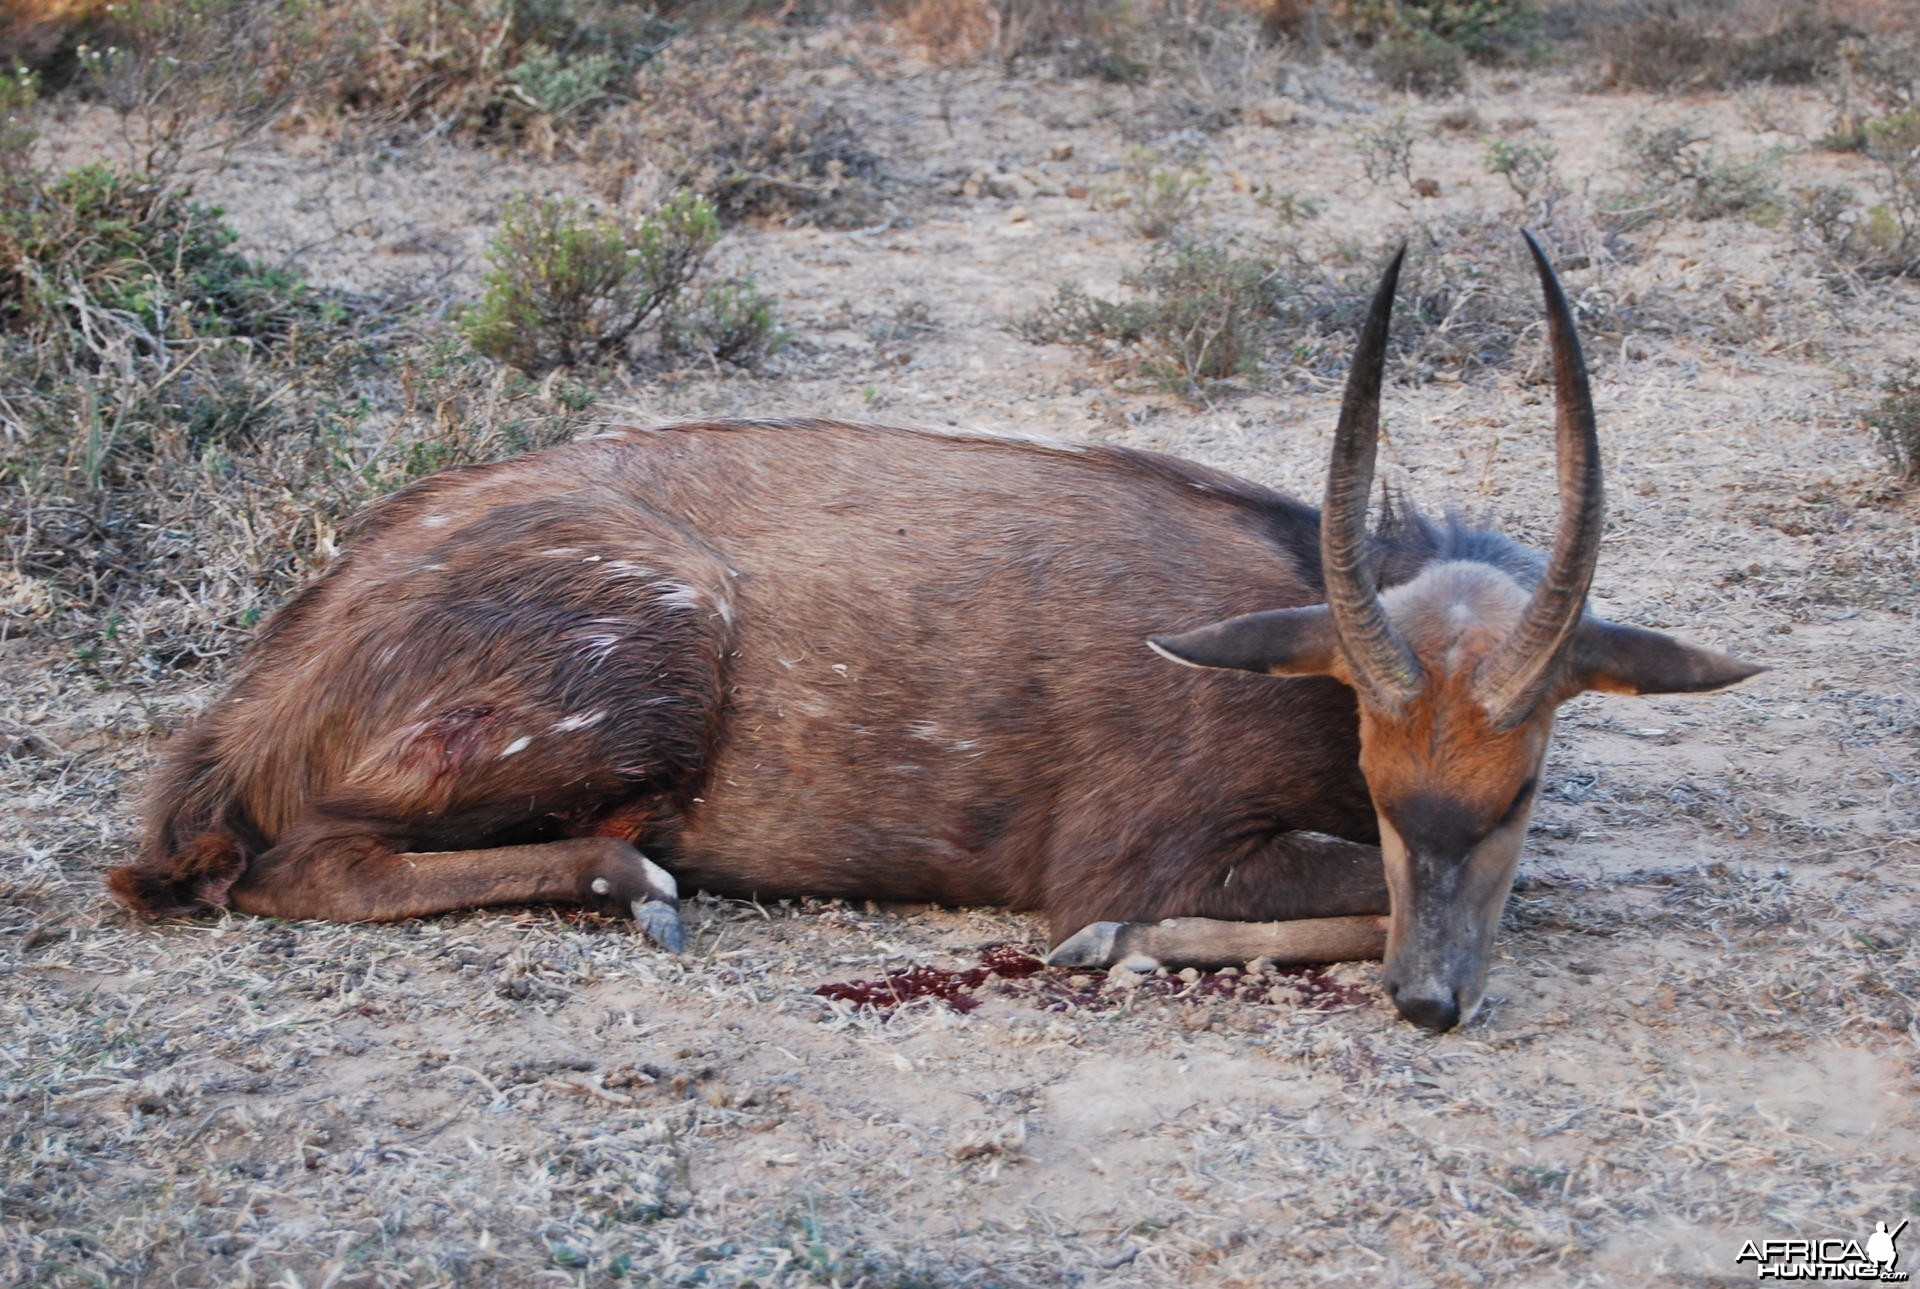 Bushbuck Hunt in Eastern Cape